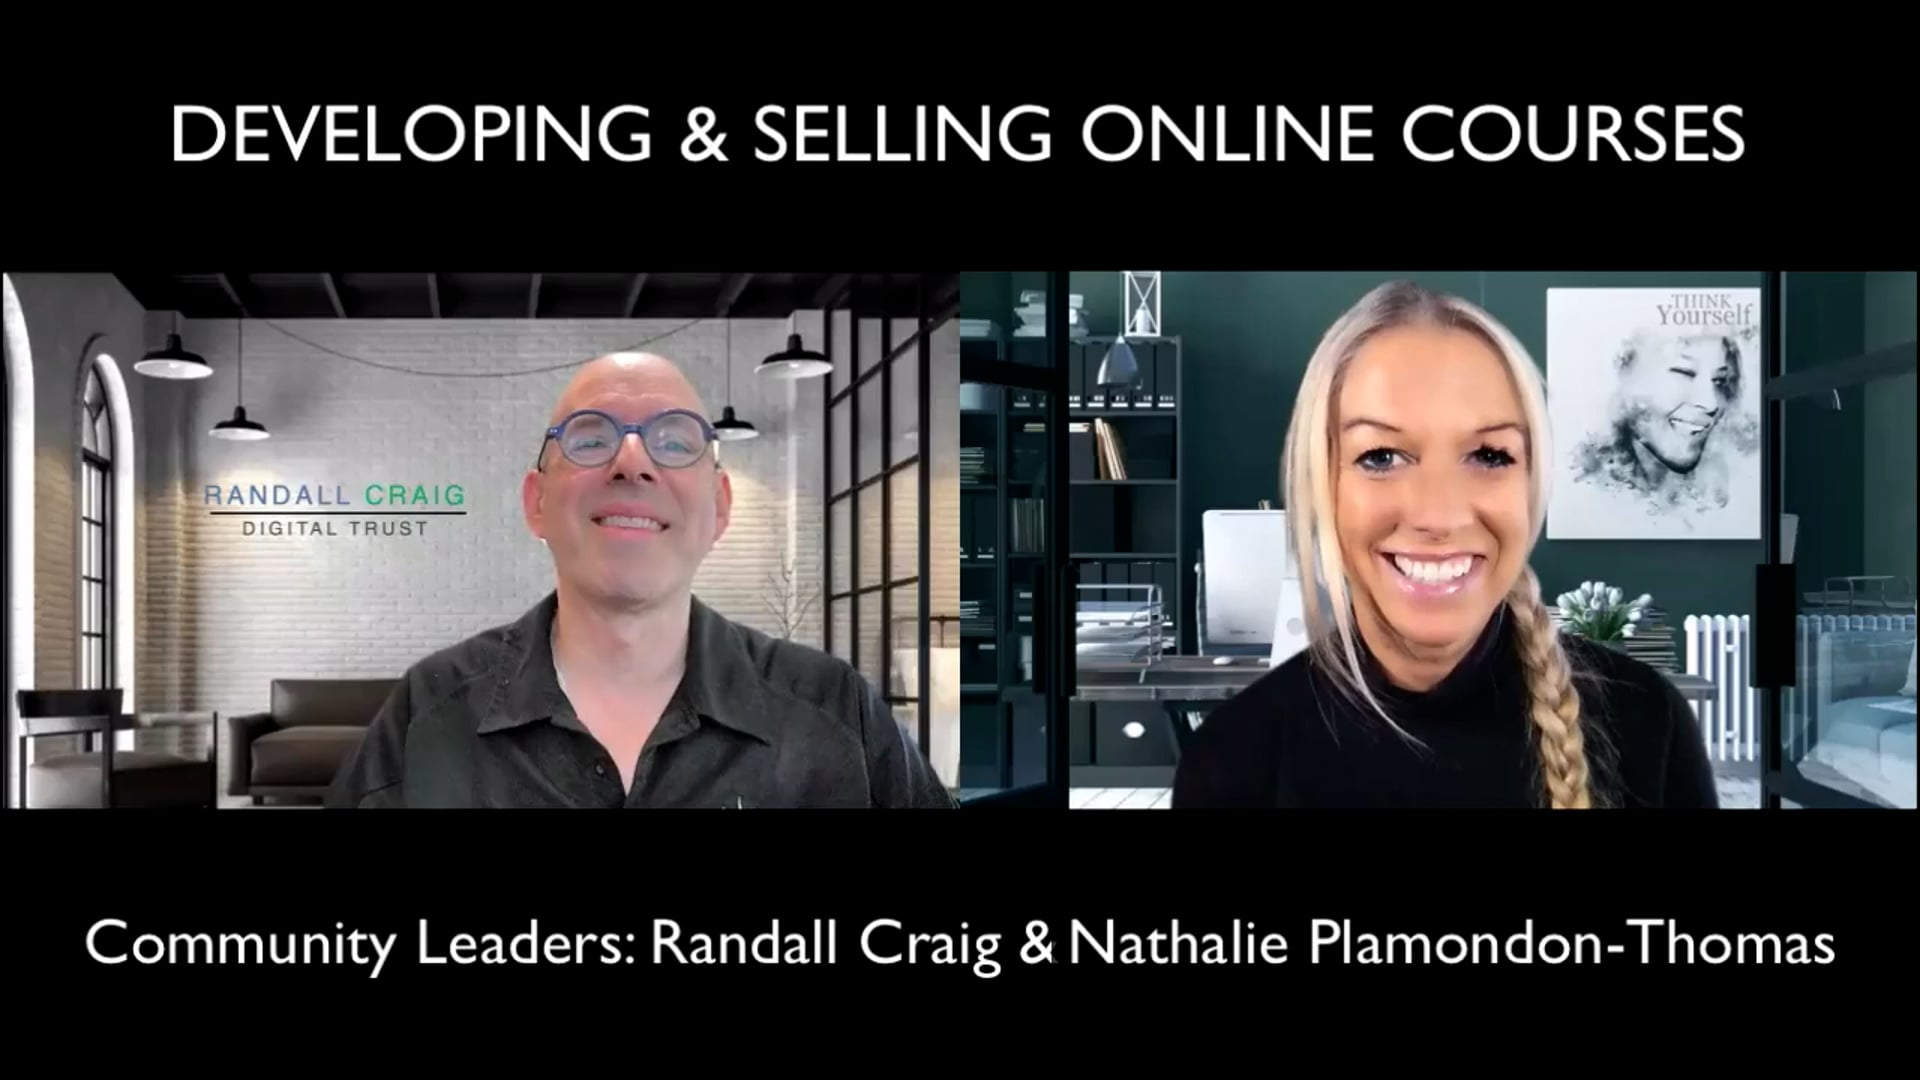 Developing and Selling Online Courses